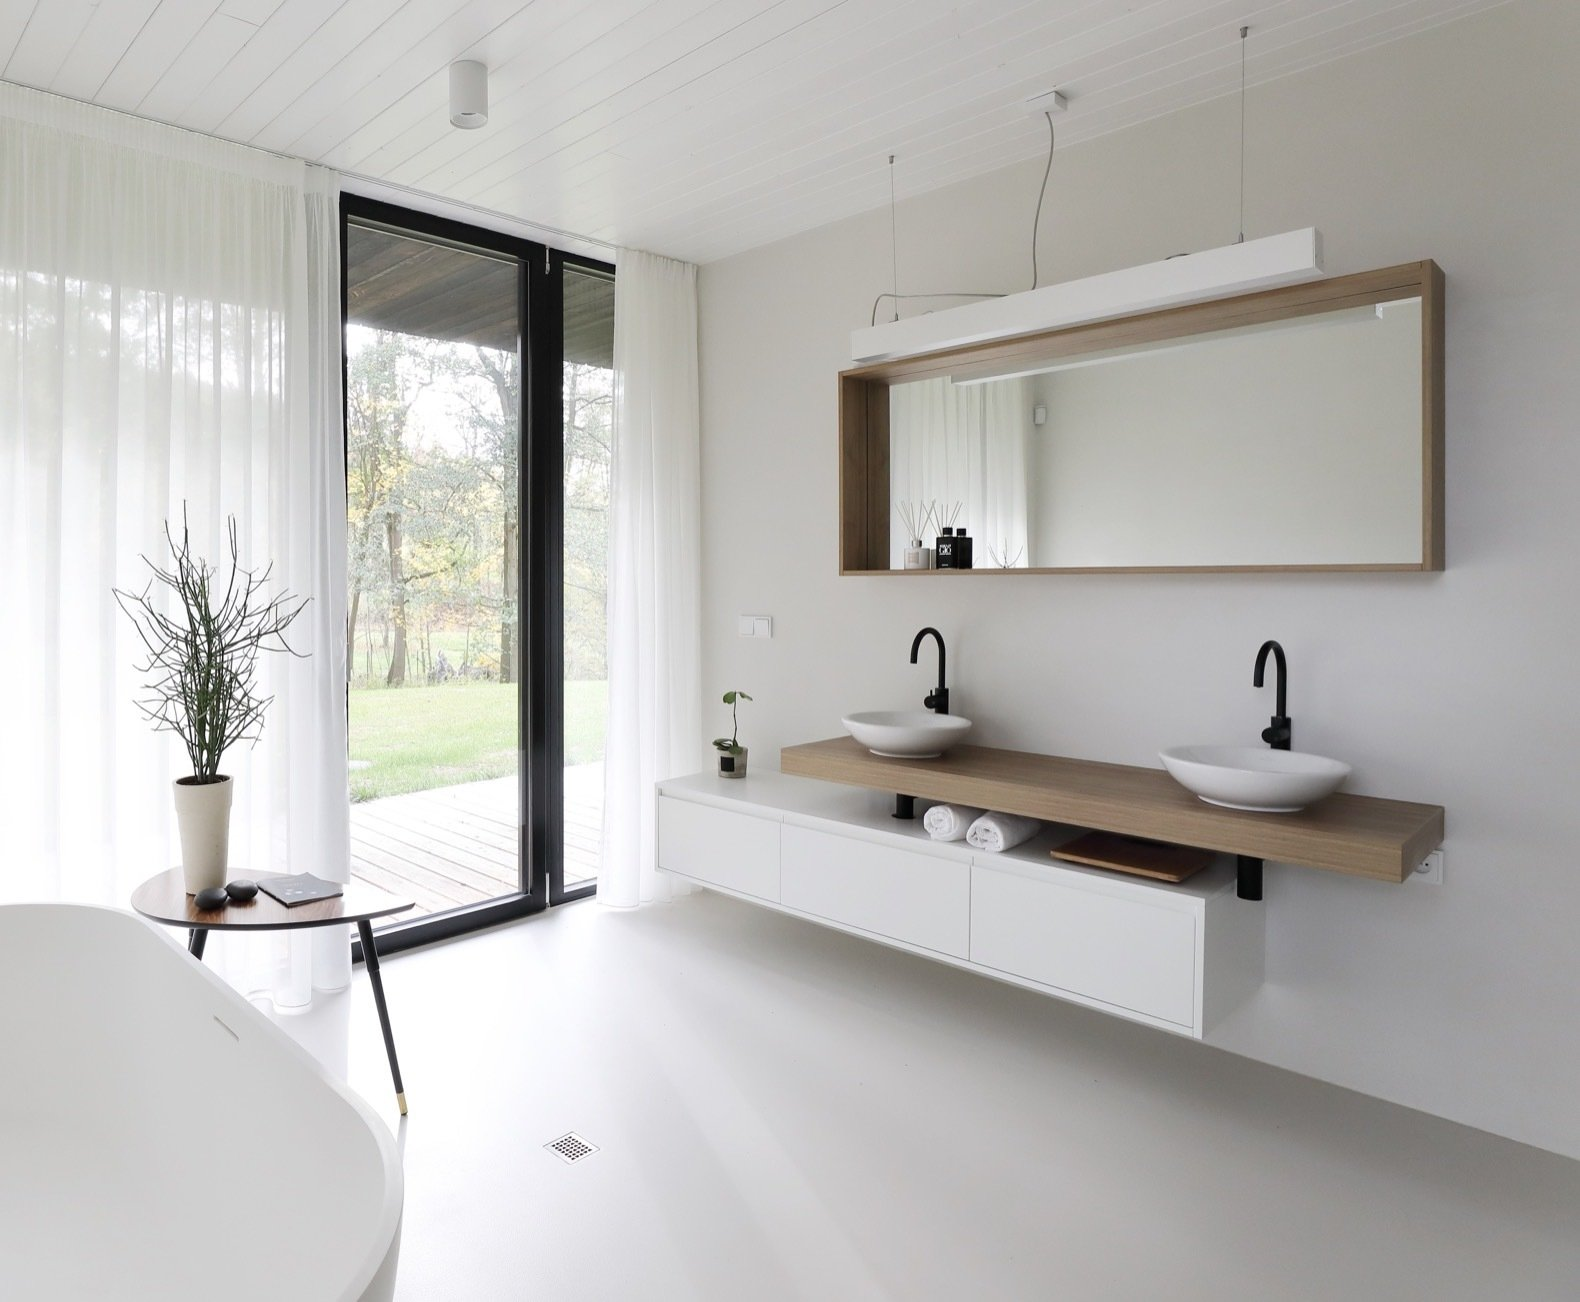 Bath, Concrete, Vessel, Wood, Freestanding, Pendant, and Ceiling Even the bathroom offers access to the outdoors.   Bath Wood Freestanding Pendant Photos from This Minimalist Bungalow Will Change Color Over Time